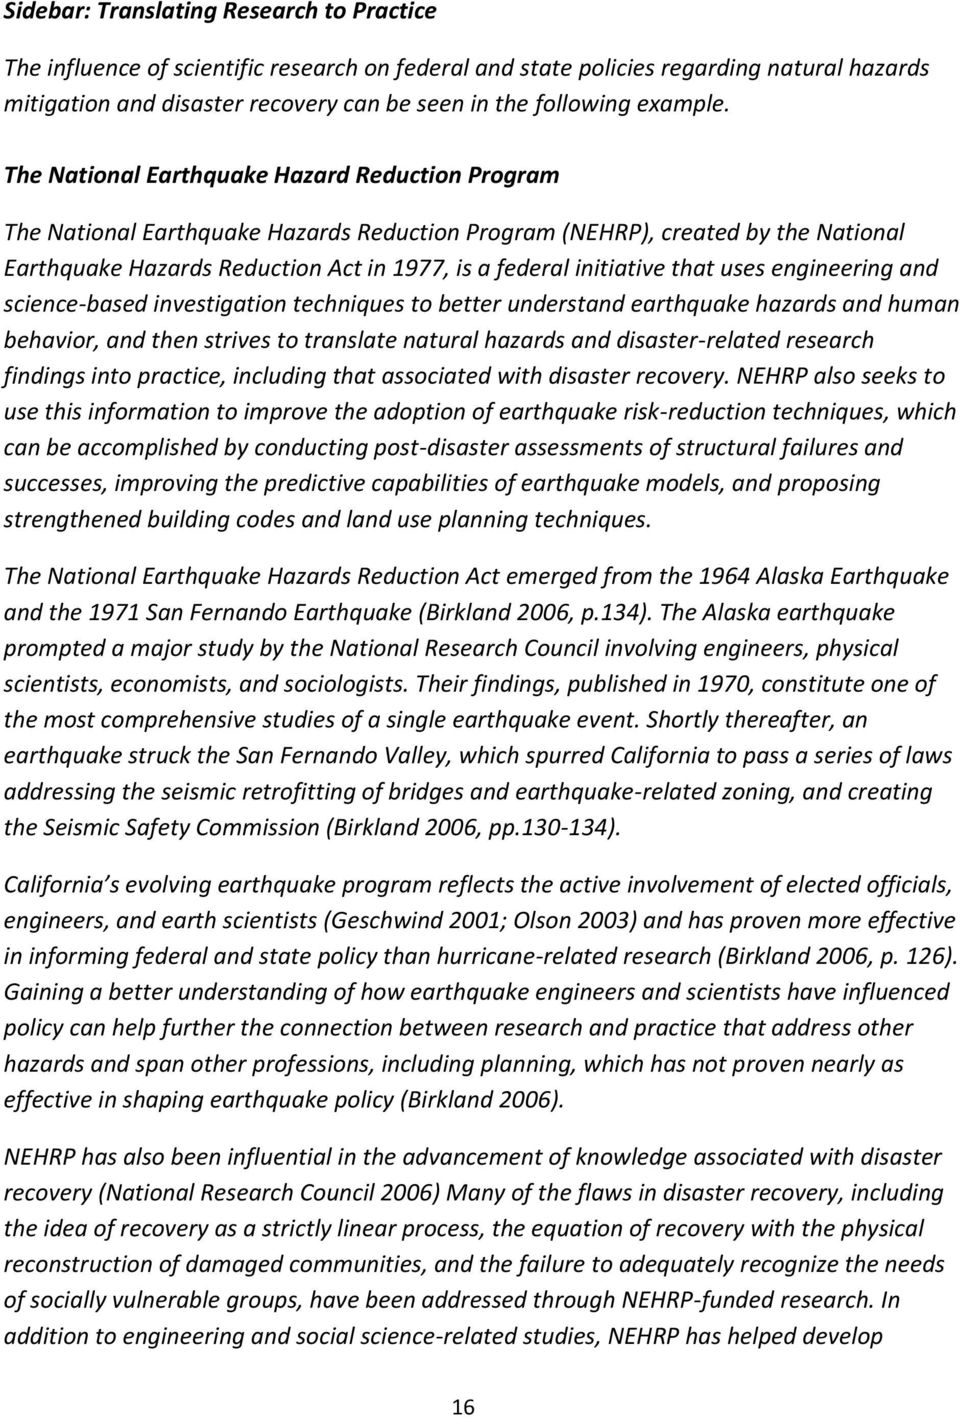 The National Earthquake Hazard Reduction Program The National Earthquake Hazards Reduction Program (NEHRP), created by the National Earthquake Hazards Reduction Act in 1977, is a federal initiative